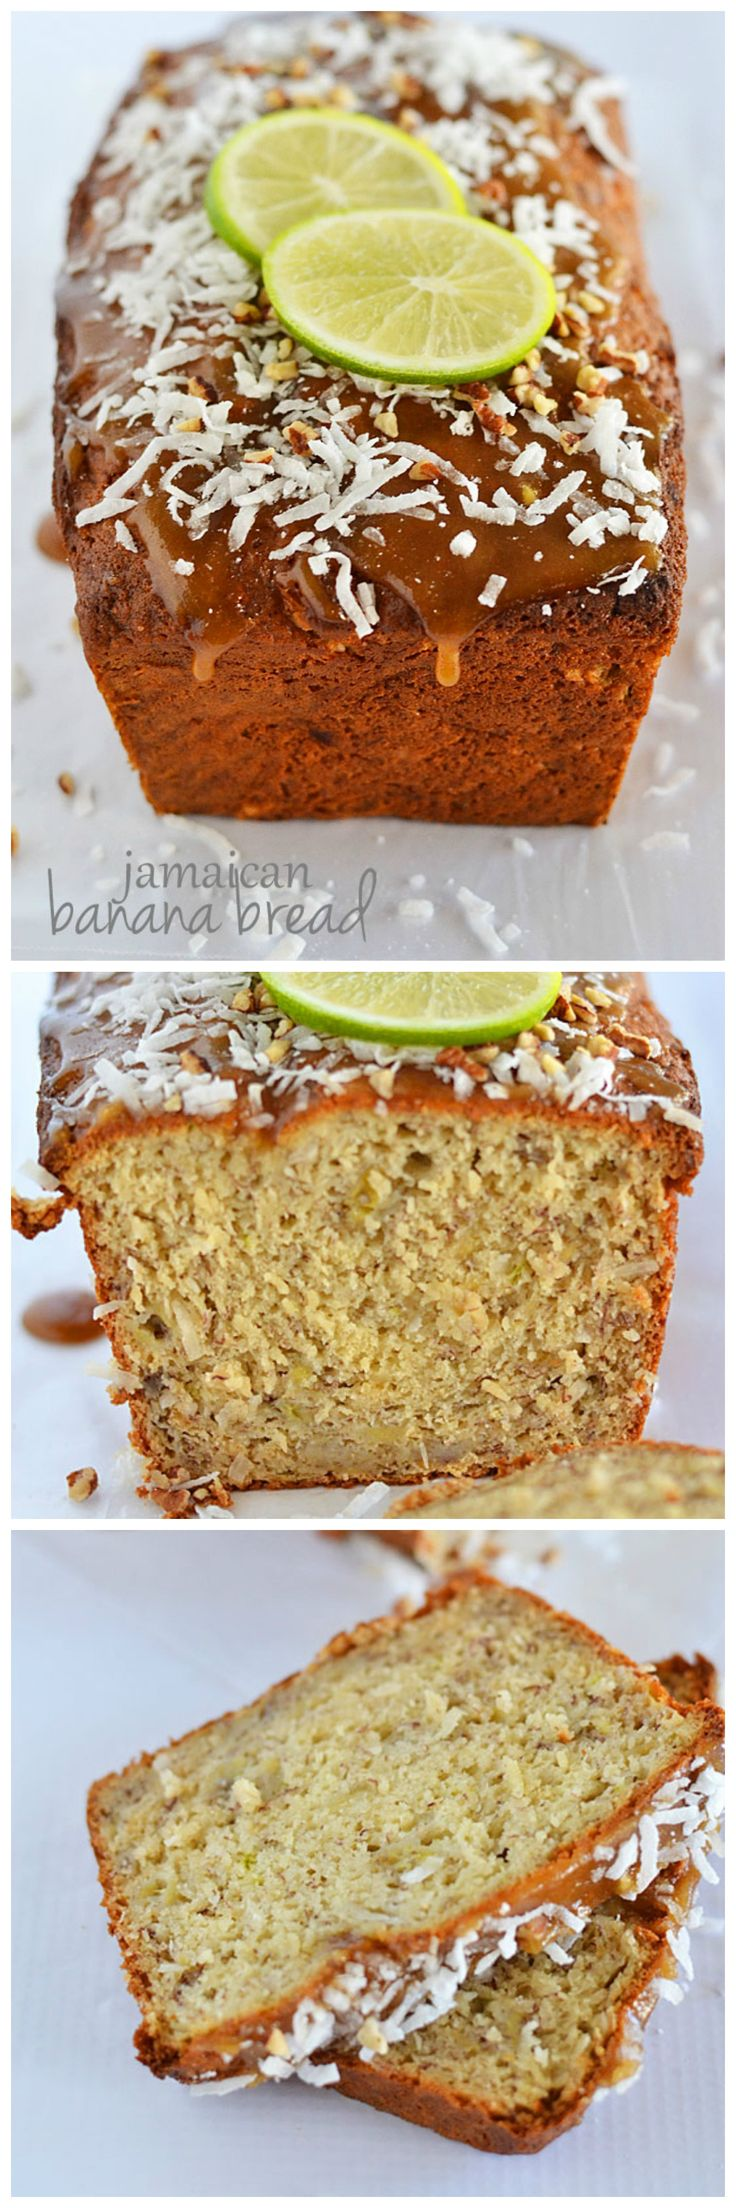 739 best jamaican foods images on pinterest cooking food jamaican jamaican banana bread jamaican cuisinejamaican food recipesjamaican forumfinder Gallery